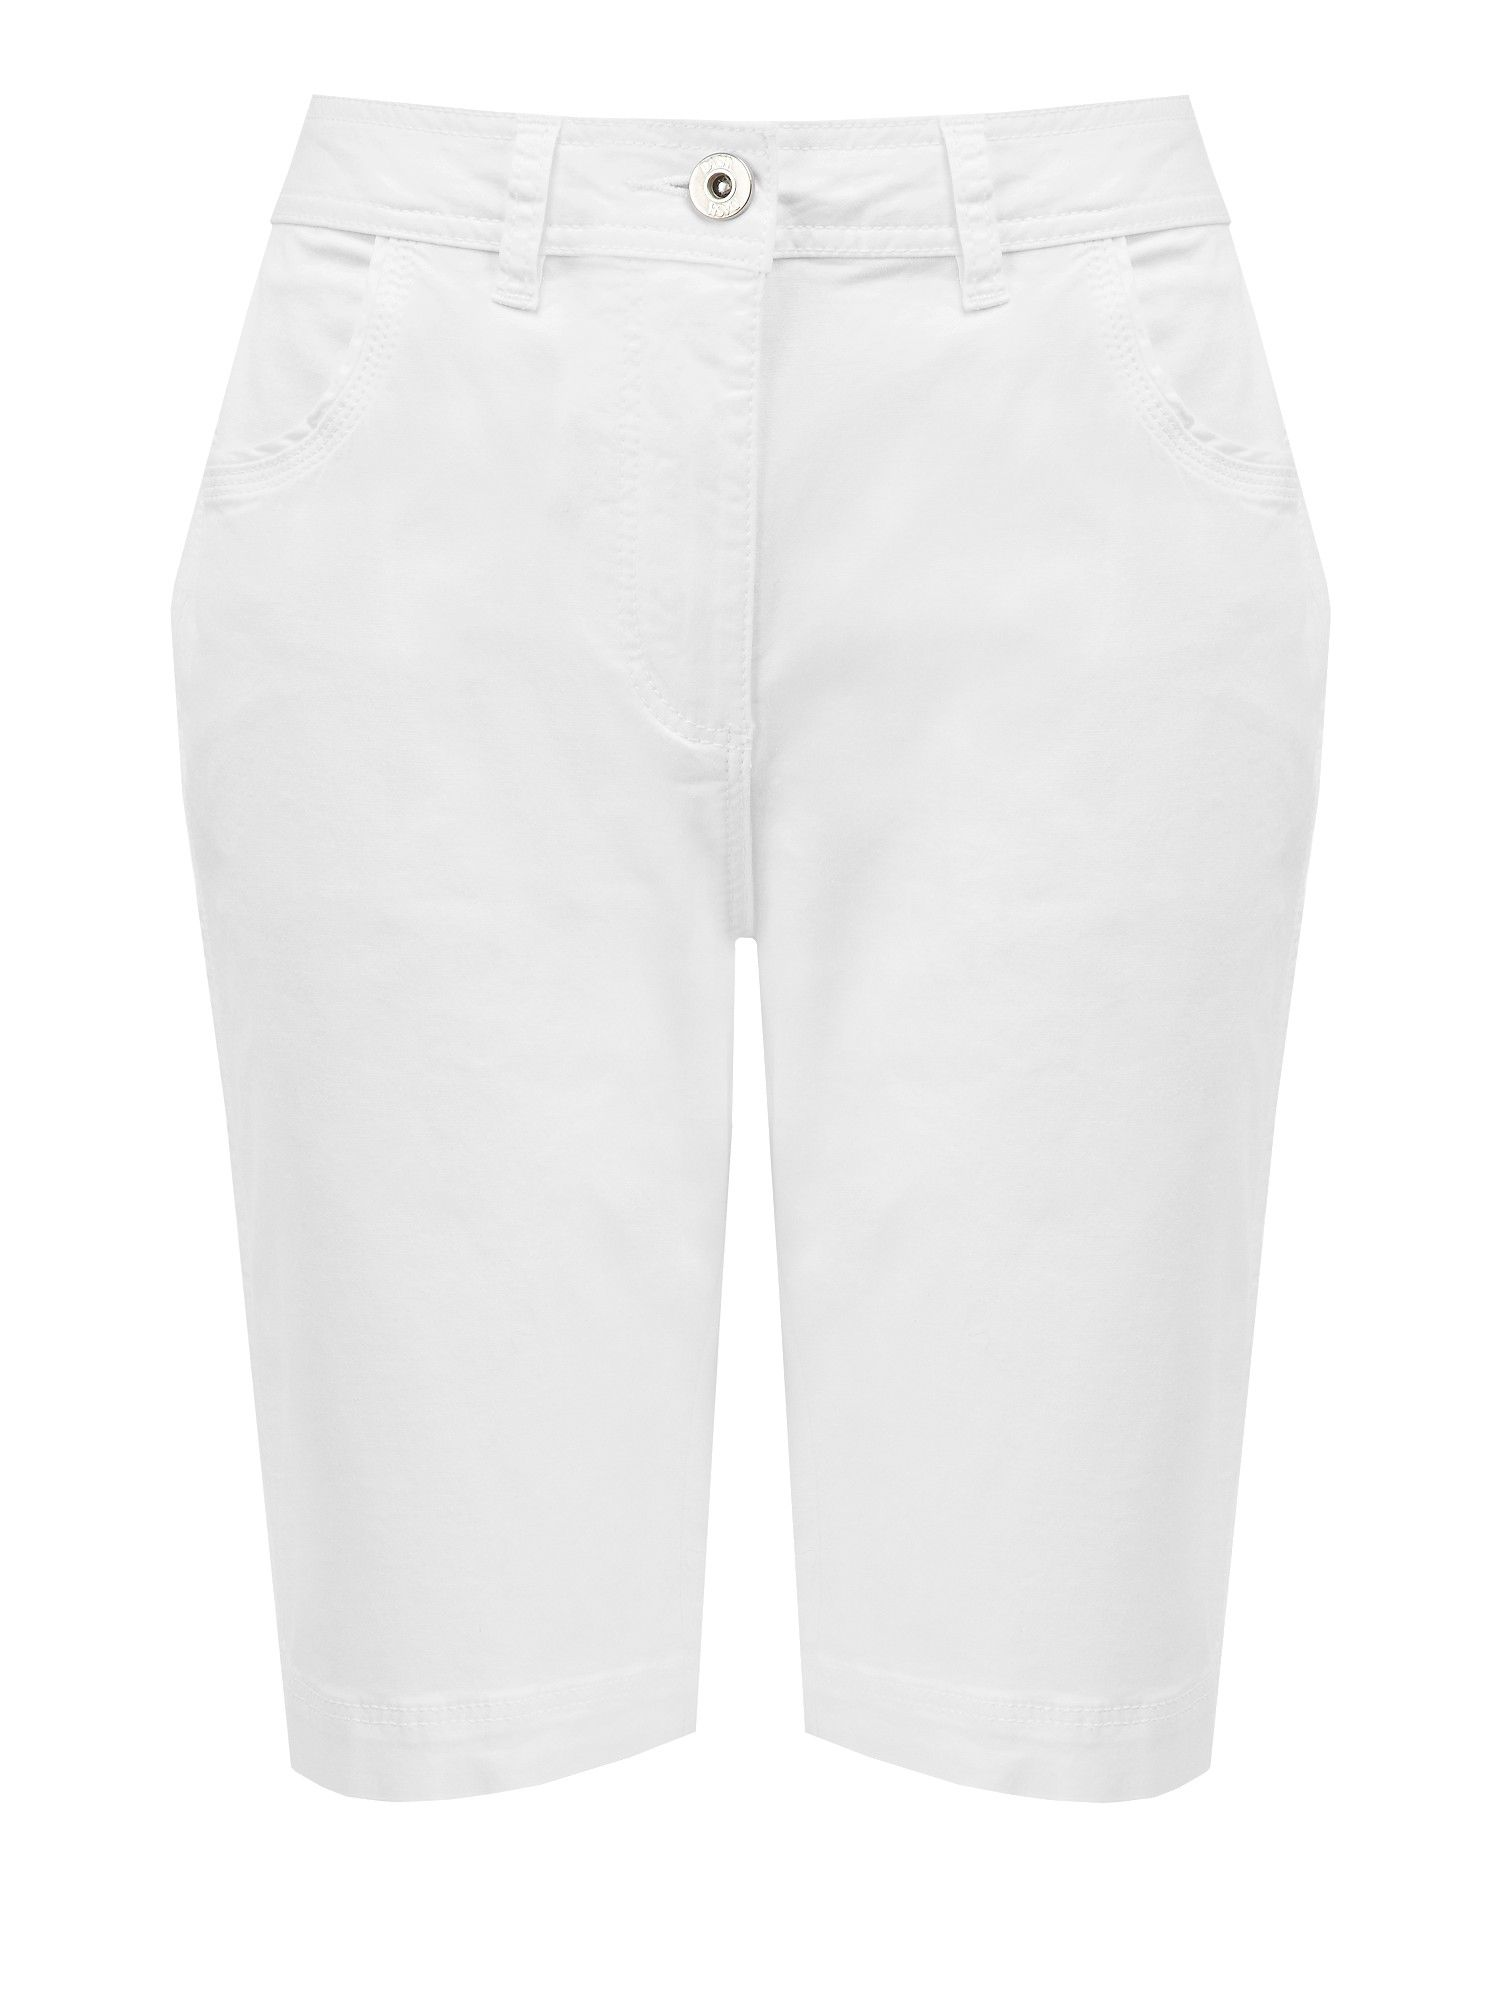 White Cotton Twill City Short